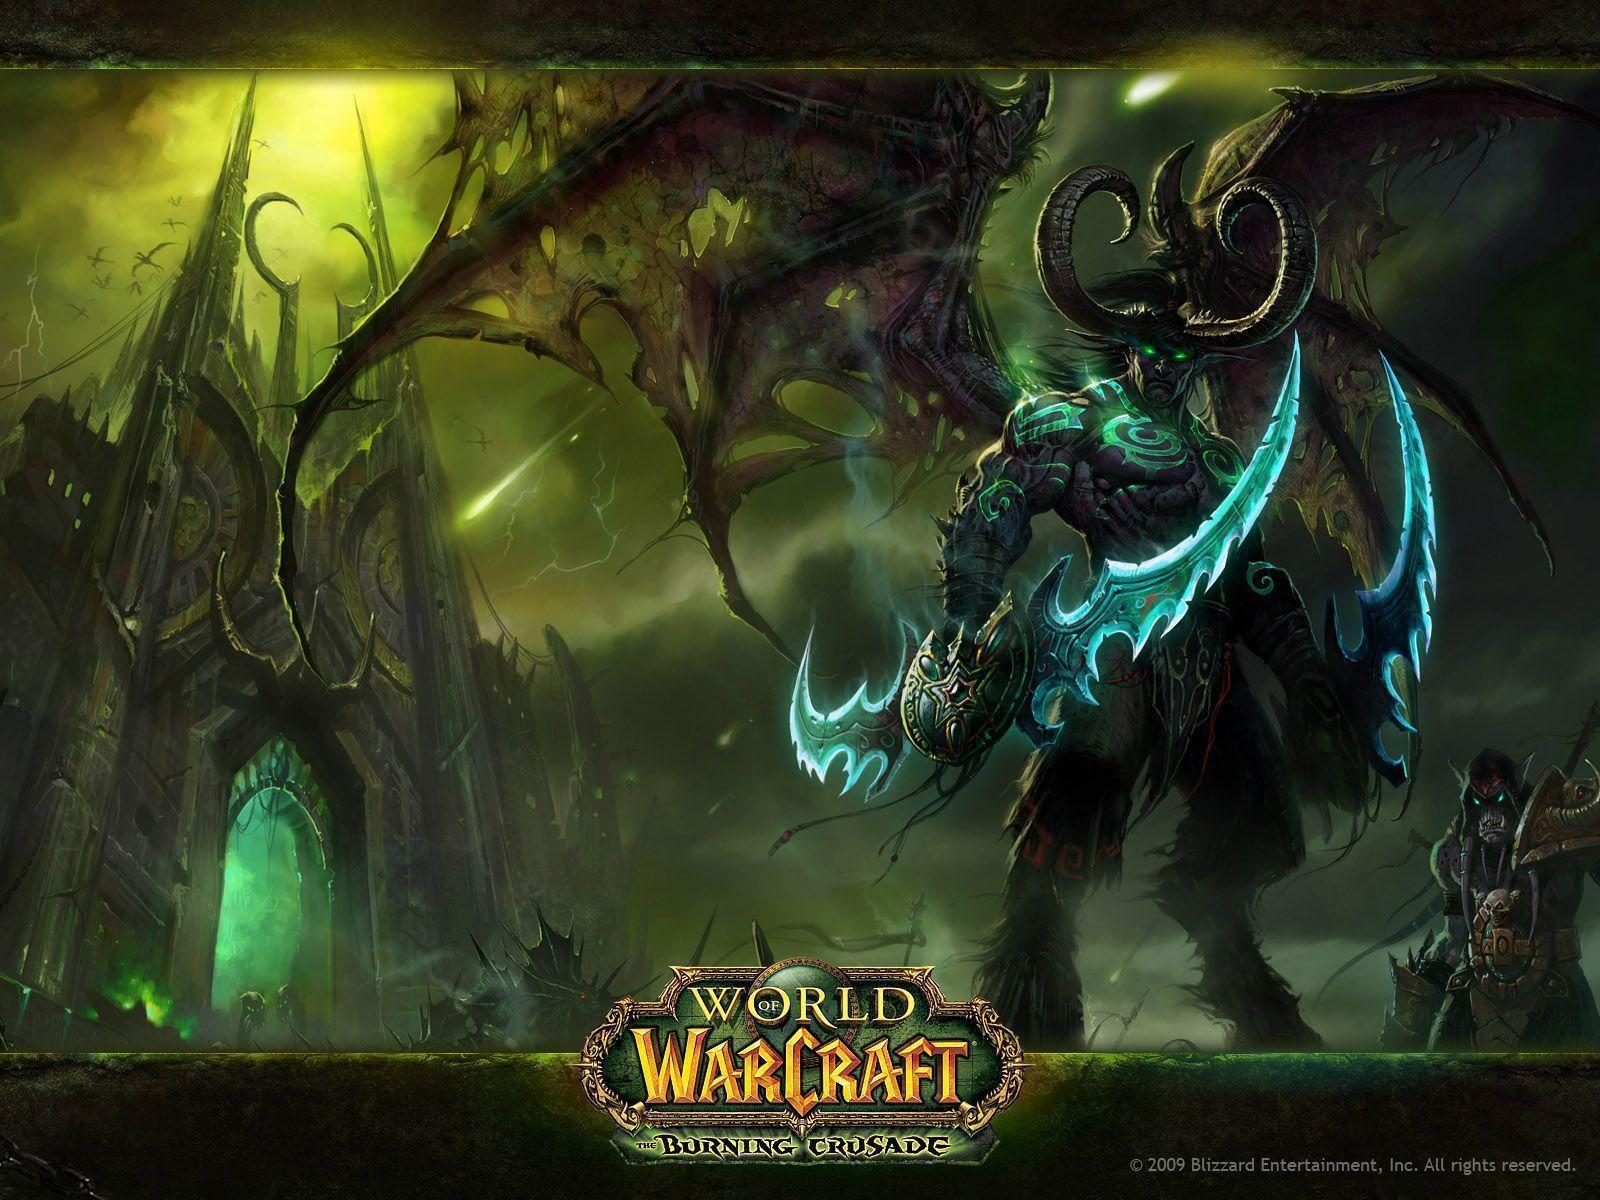 Blizzard Entertainment:World of Warcraft: The Burning Crusade